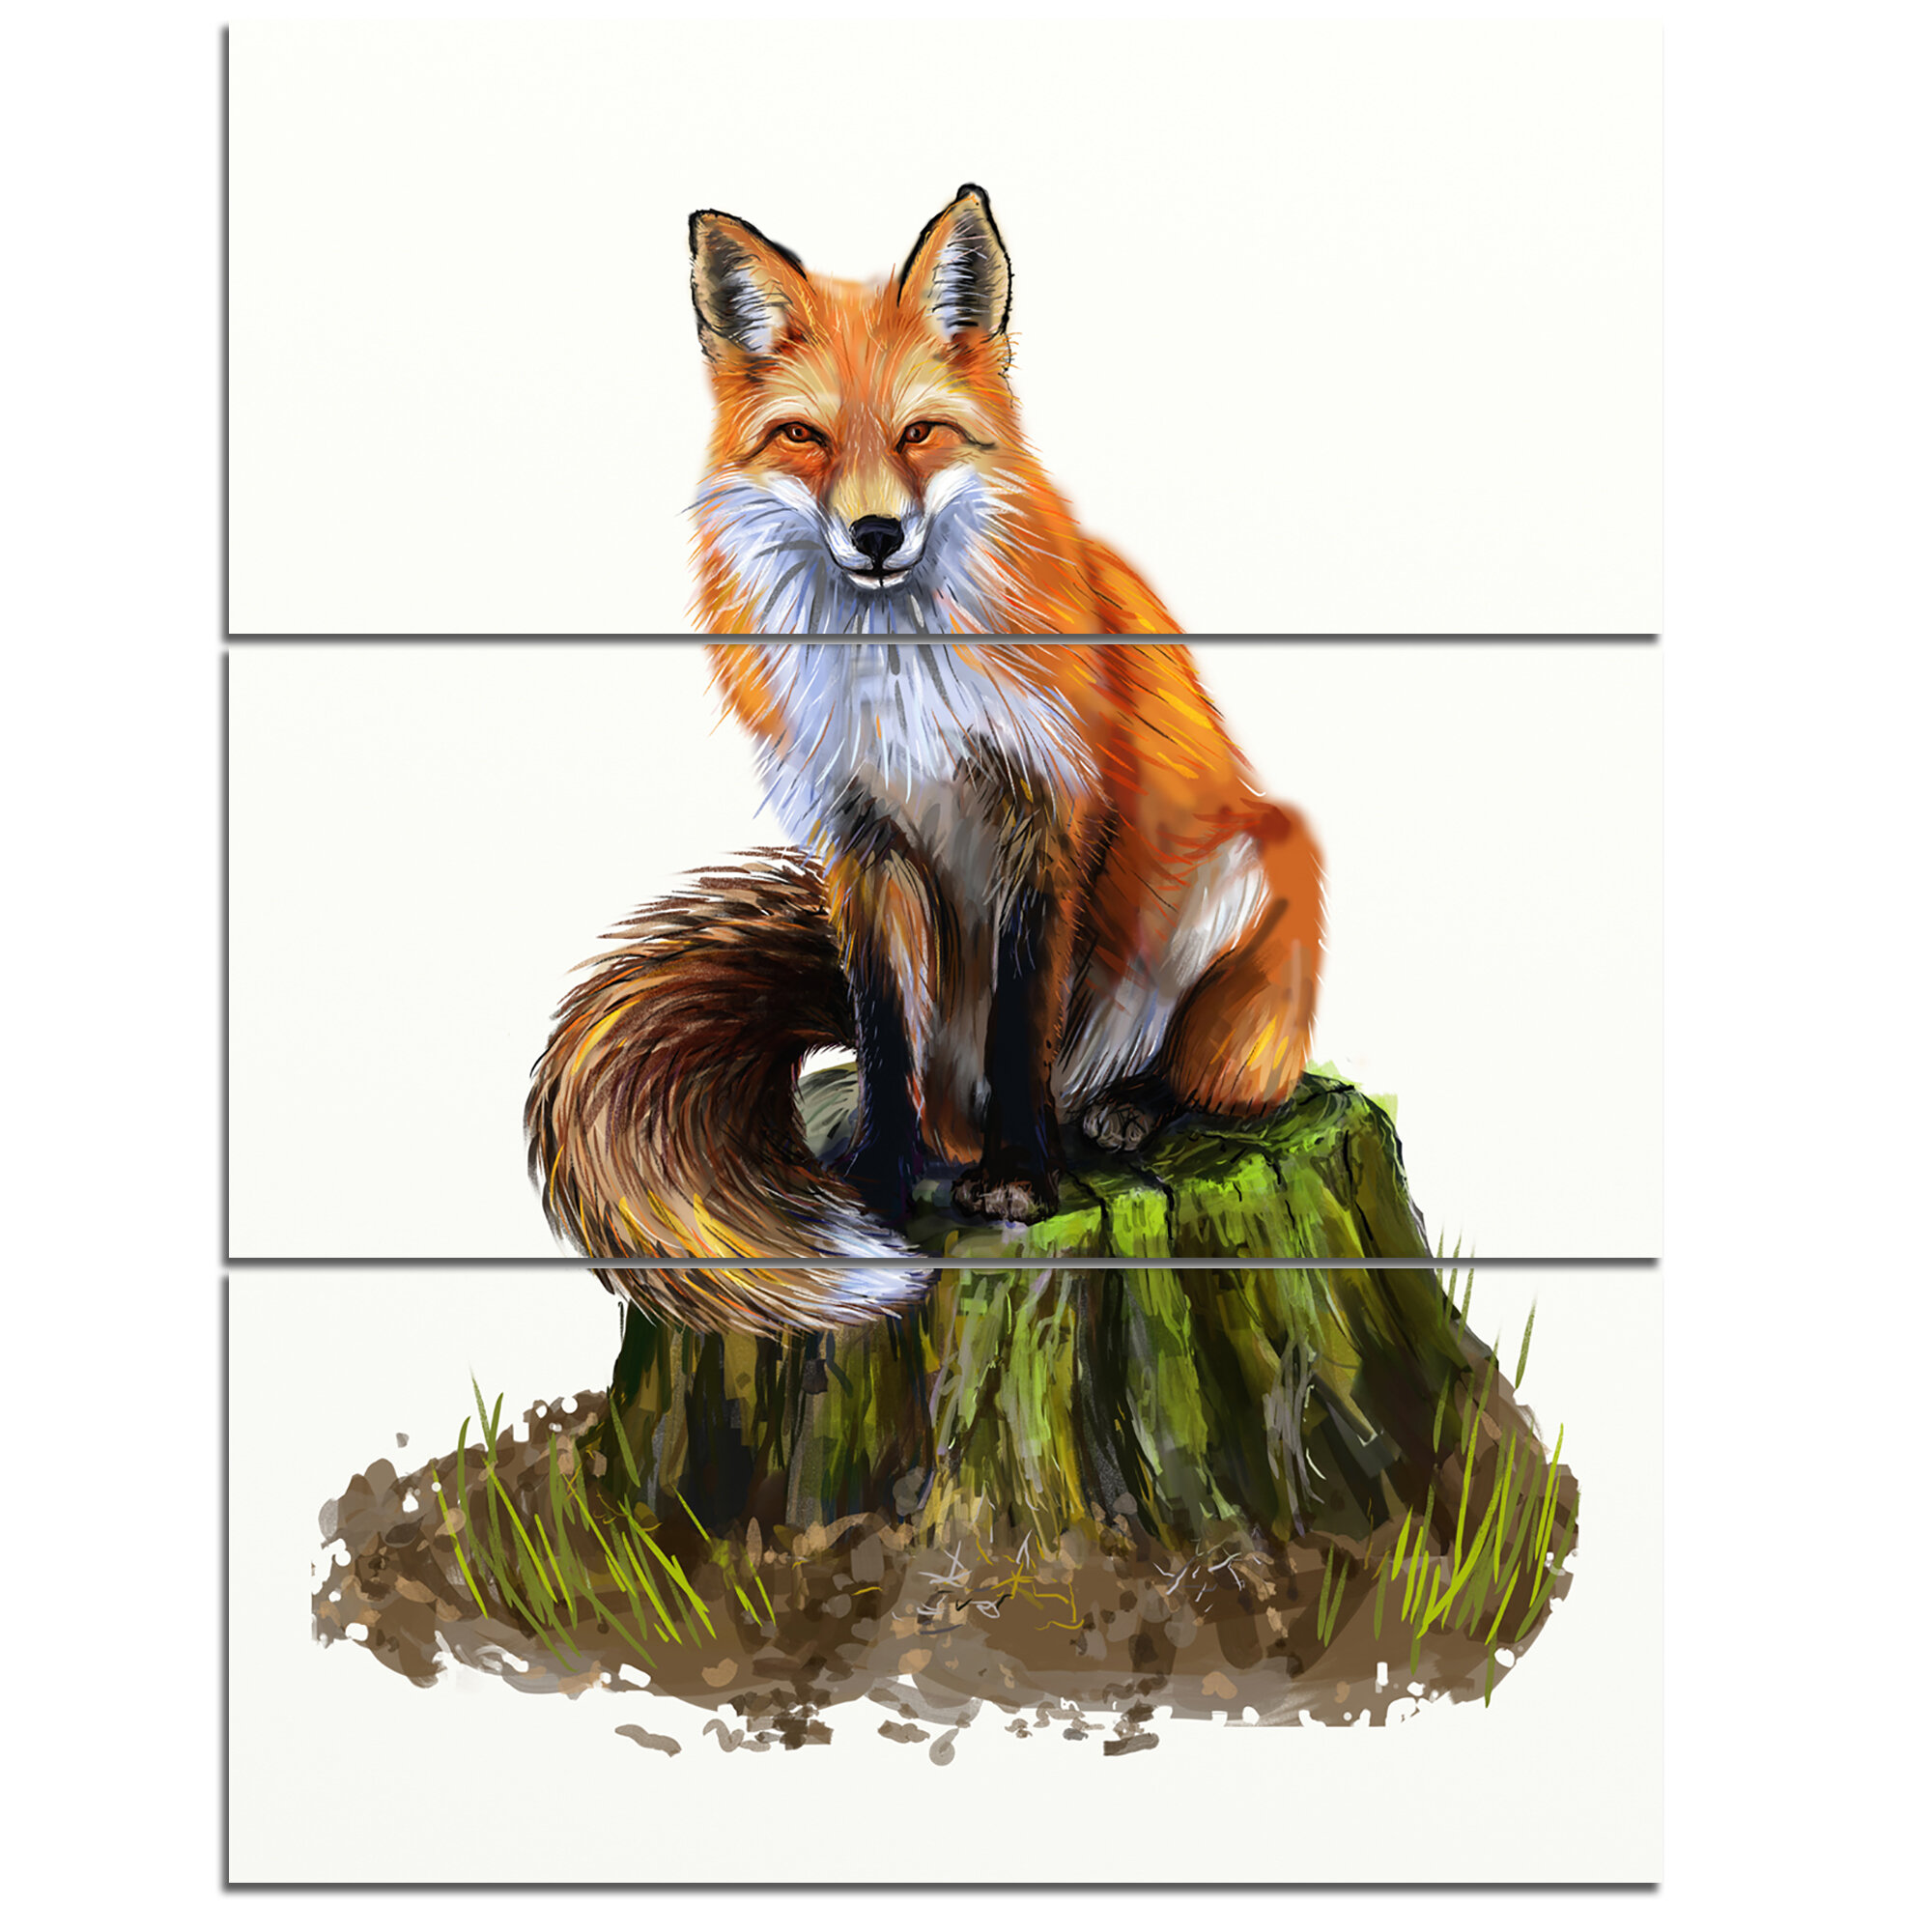 Designart The Clever Fox Illustration 3 Piece Wall Art On Wrapped Canvas Set Wayfair